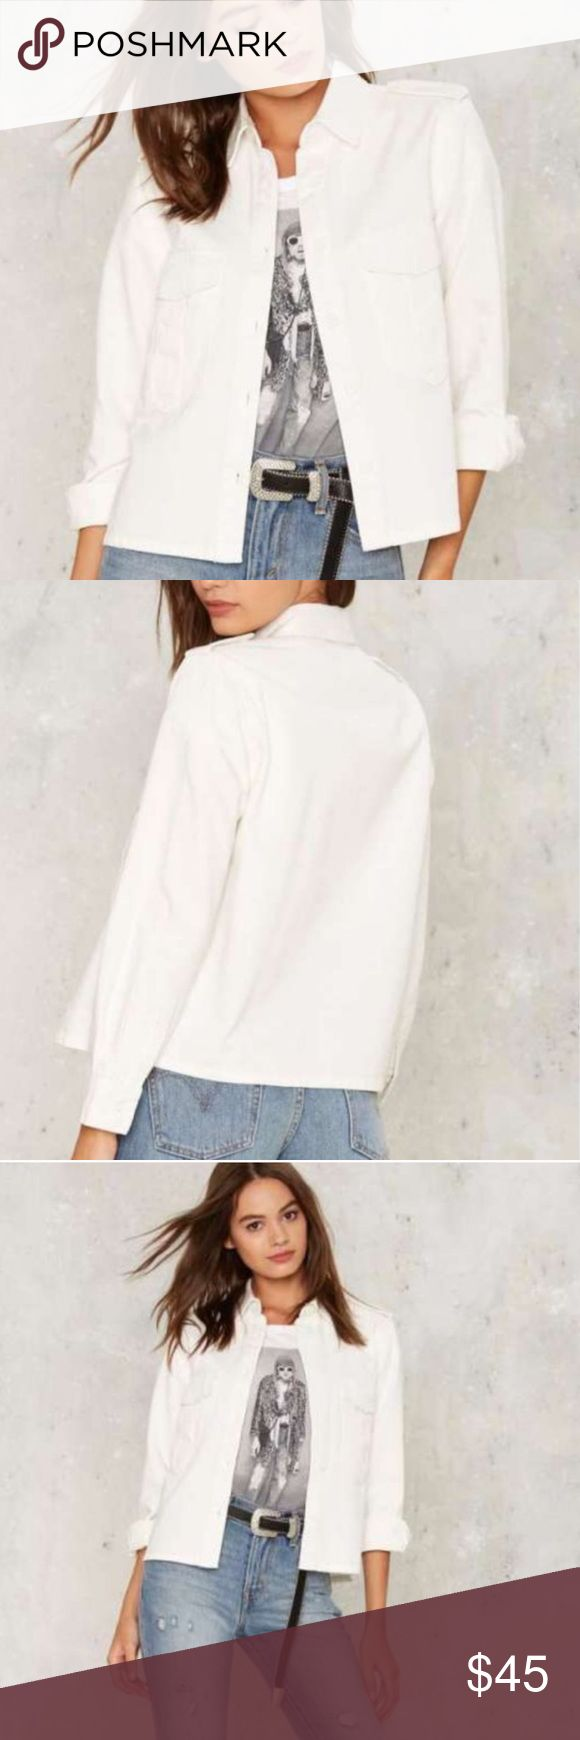 New! WHITE denim JACKET cotton utility shirt SZ M New! Crisp COTTOn white denim jacket with button front closure, 2 flap pockets at chest and button cuffs. Looser foot for versatility, style and comfort! Size M. (F1) Nasty Gal Jackets & Coats Jean Jackets